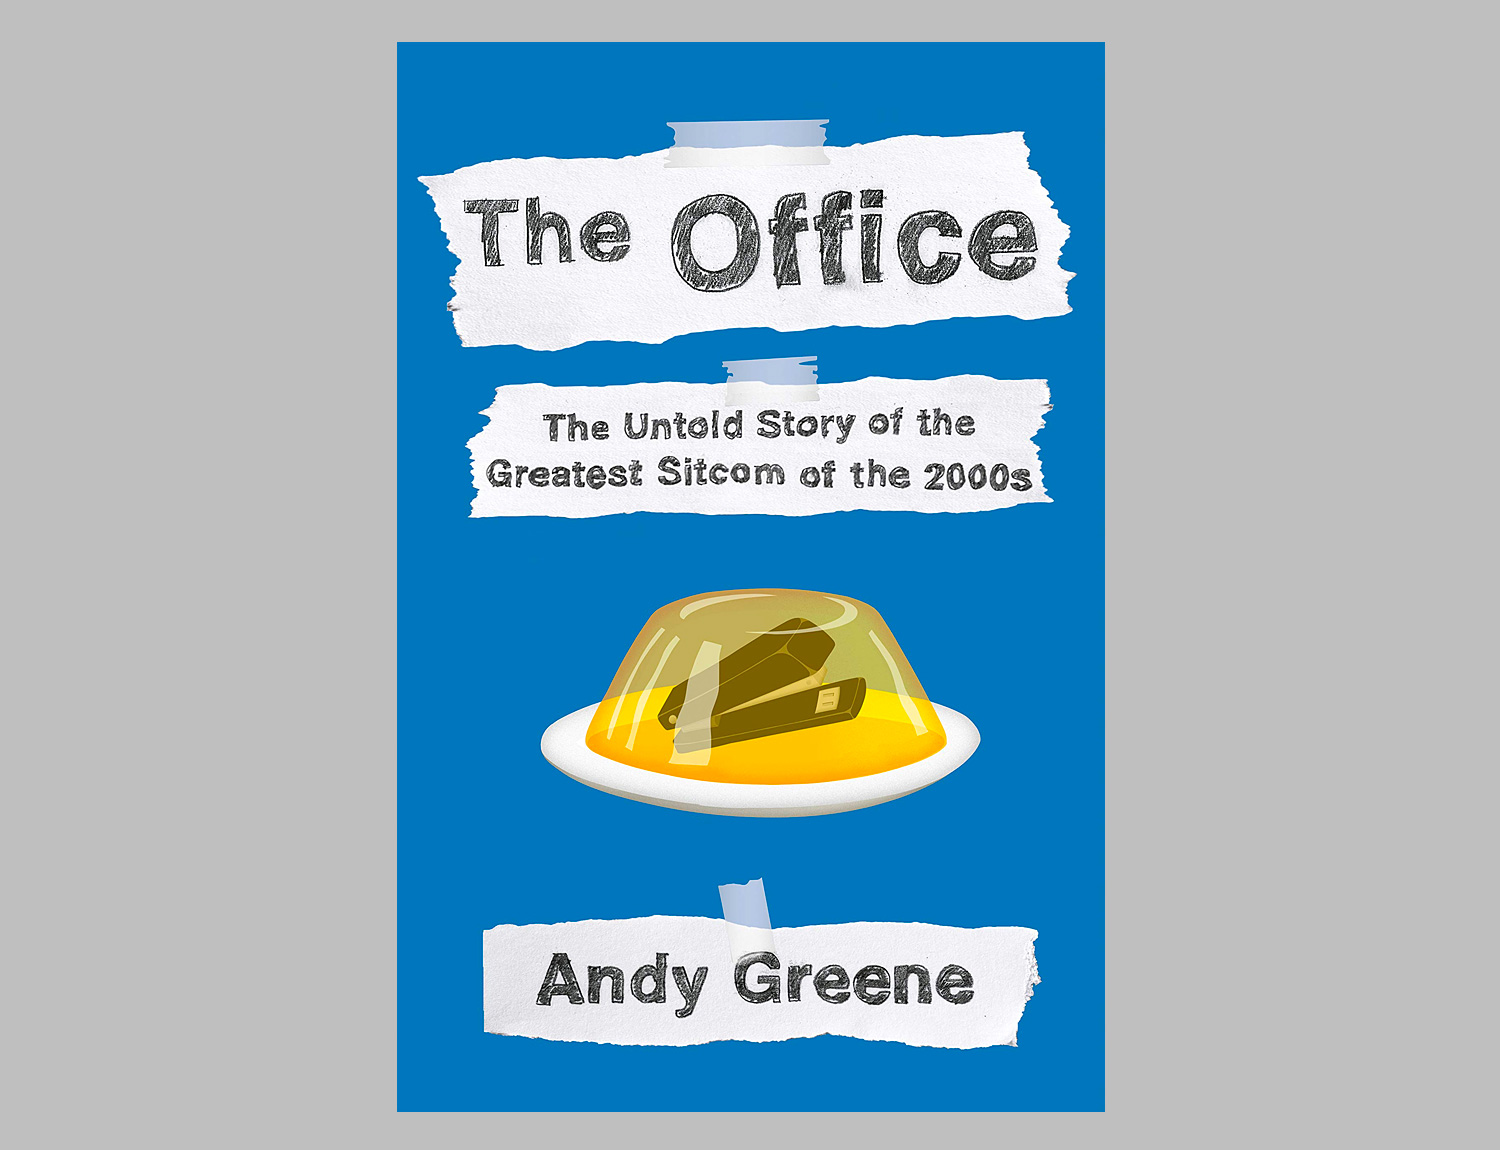 The Office: The Untold Story of the Greatest Sitcom of the 2000s at werd.com